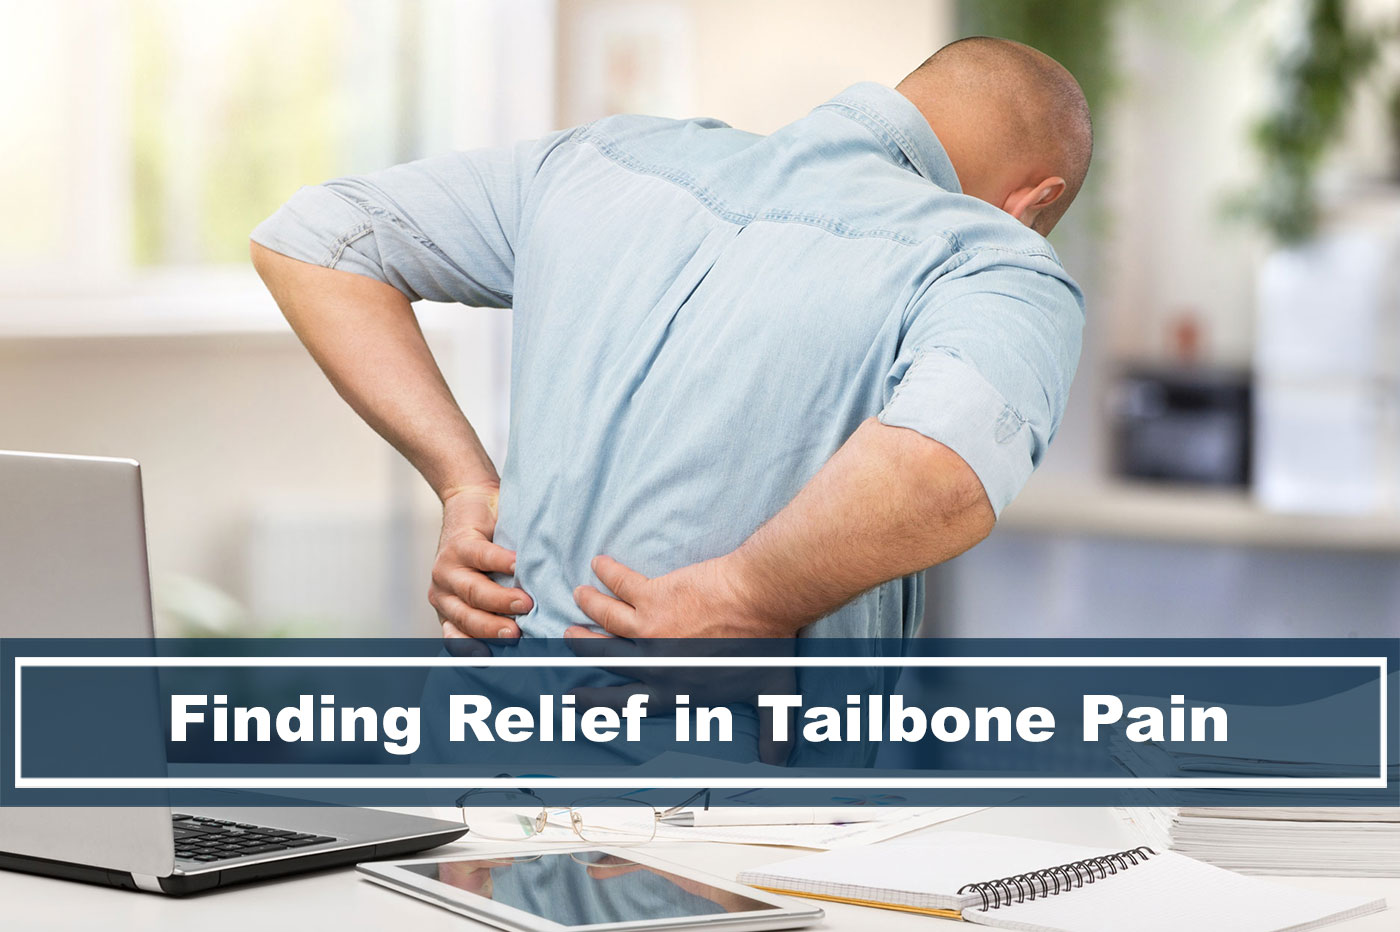 finding relief in tailbone pain ergonomic chair